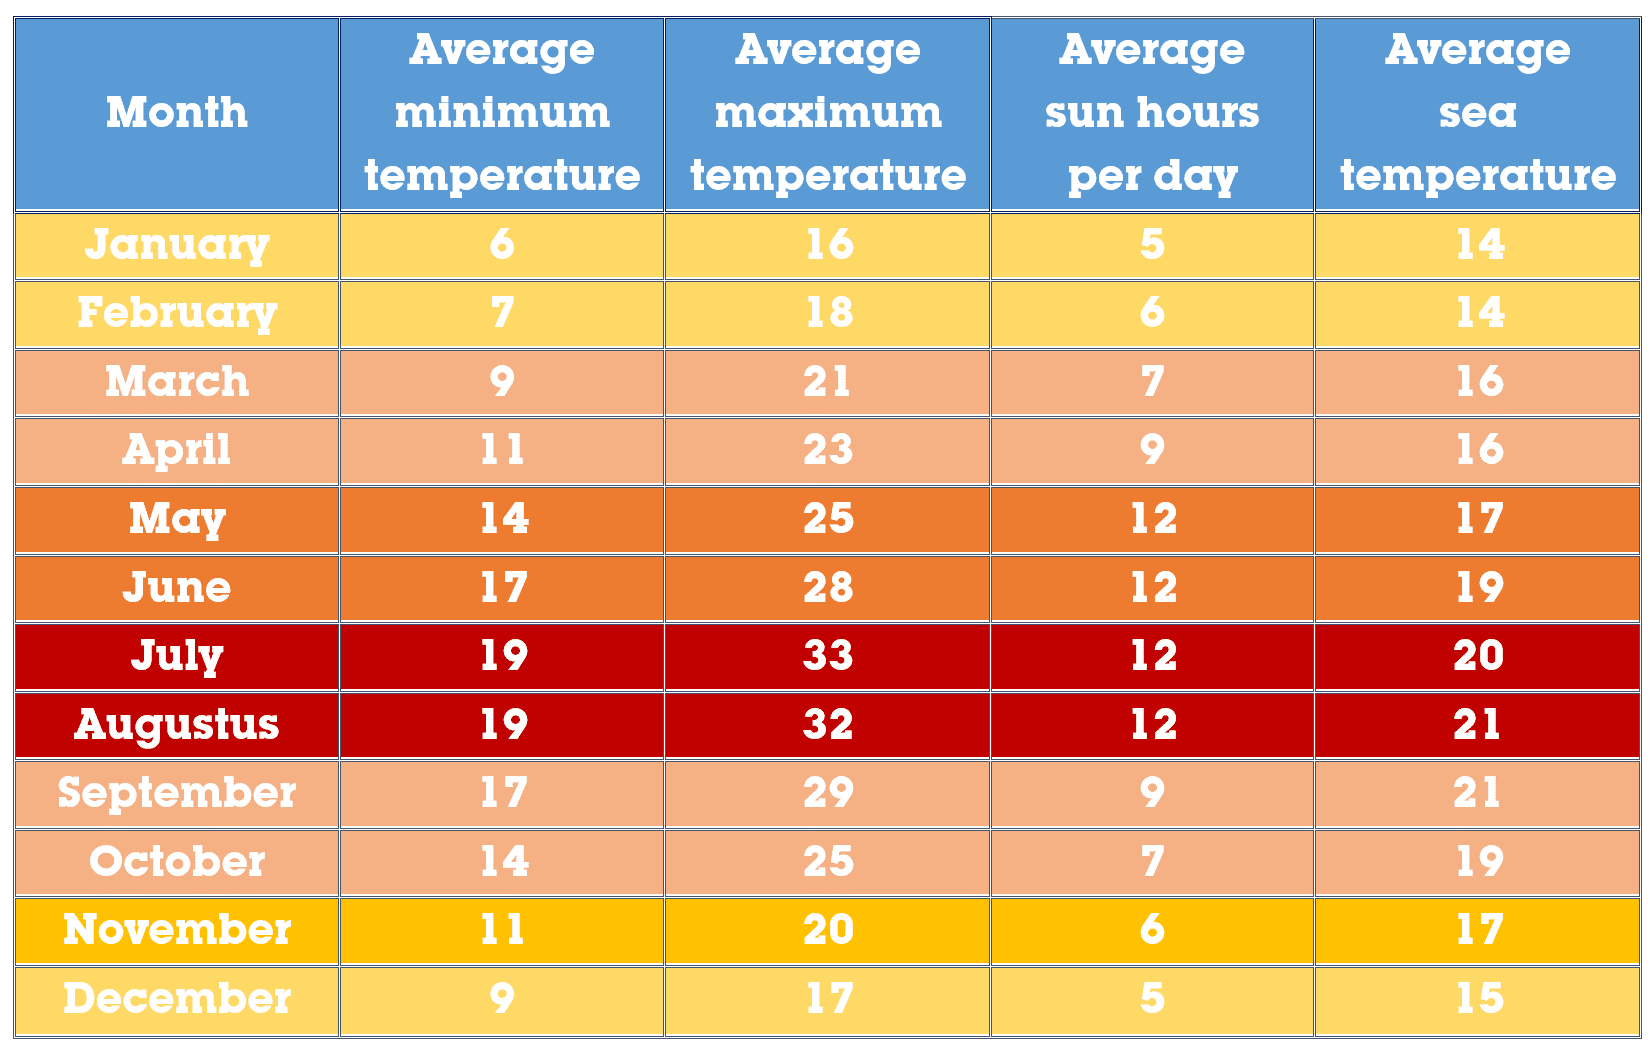 Average temperatures in the Algarve